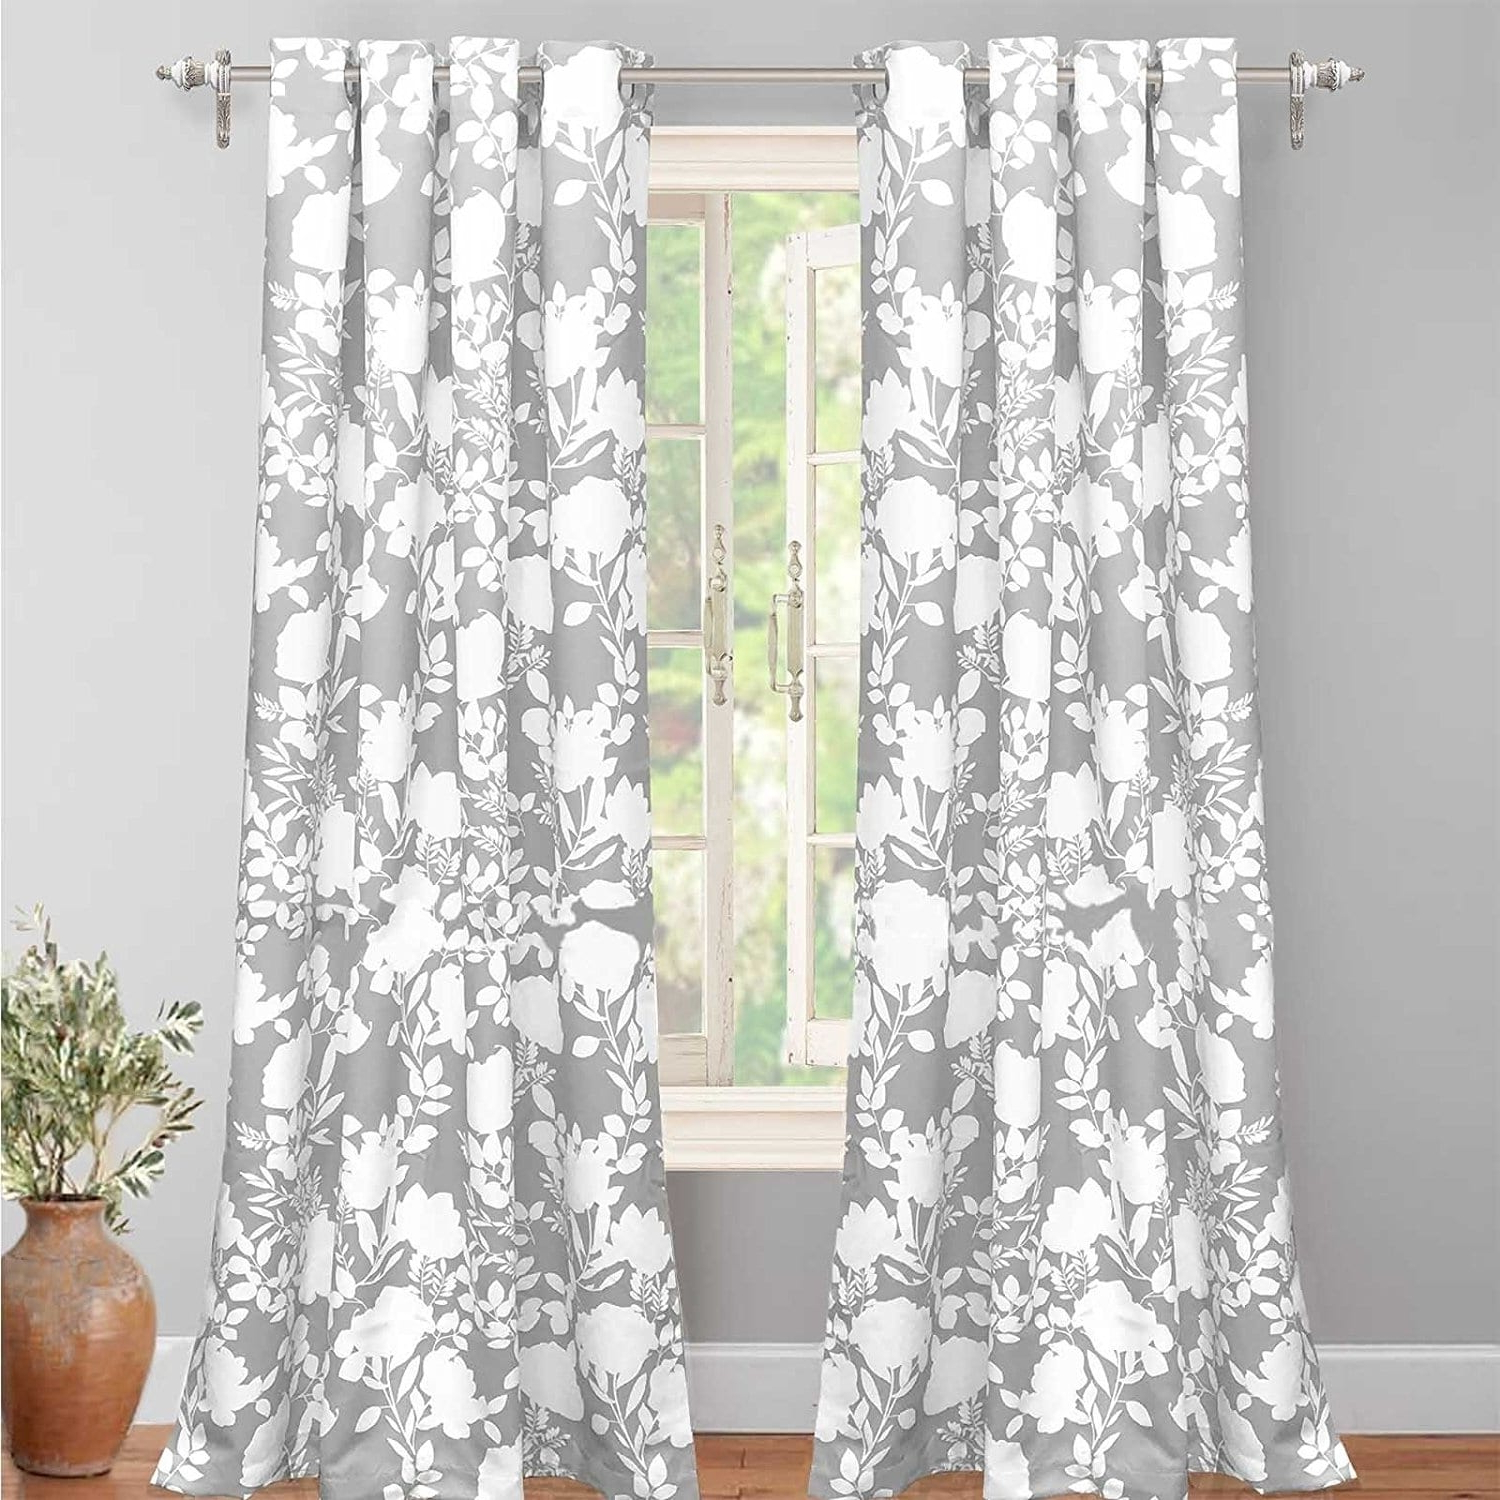 Pastel Damask Printed Room Darkening Grommet Window Curtain Panel Pairs Inside Well Known Driftaway Floral Delight Room Darkening Window Curtain Panel (View 6 of 20)